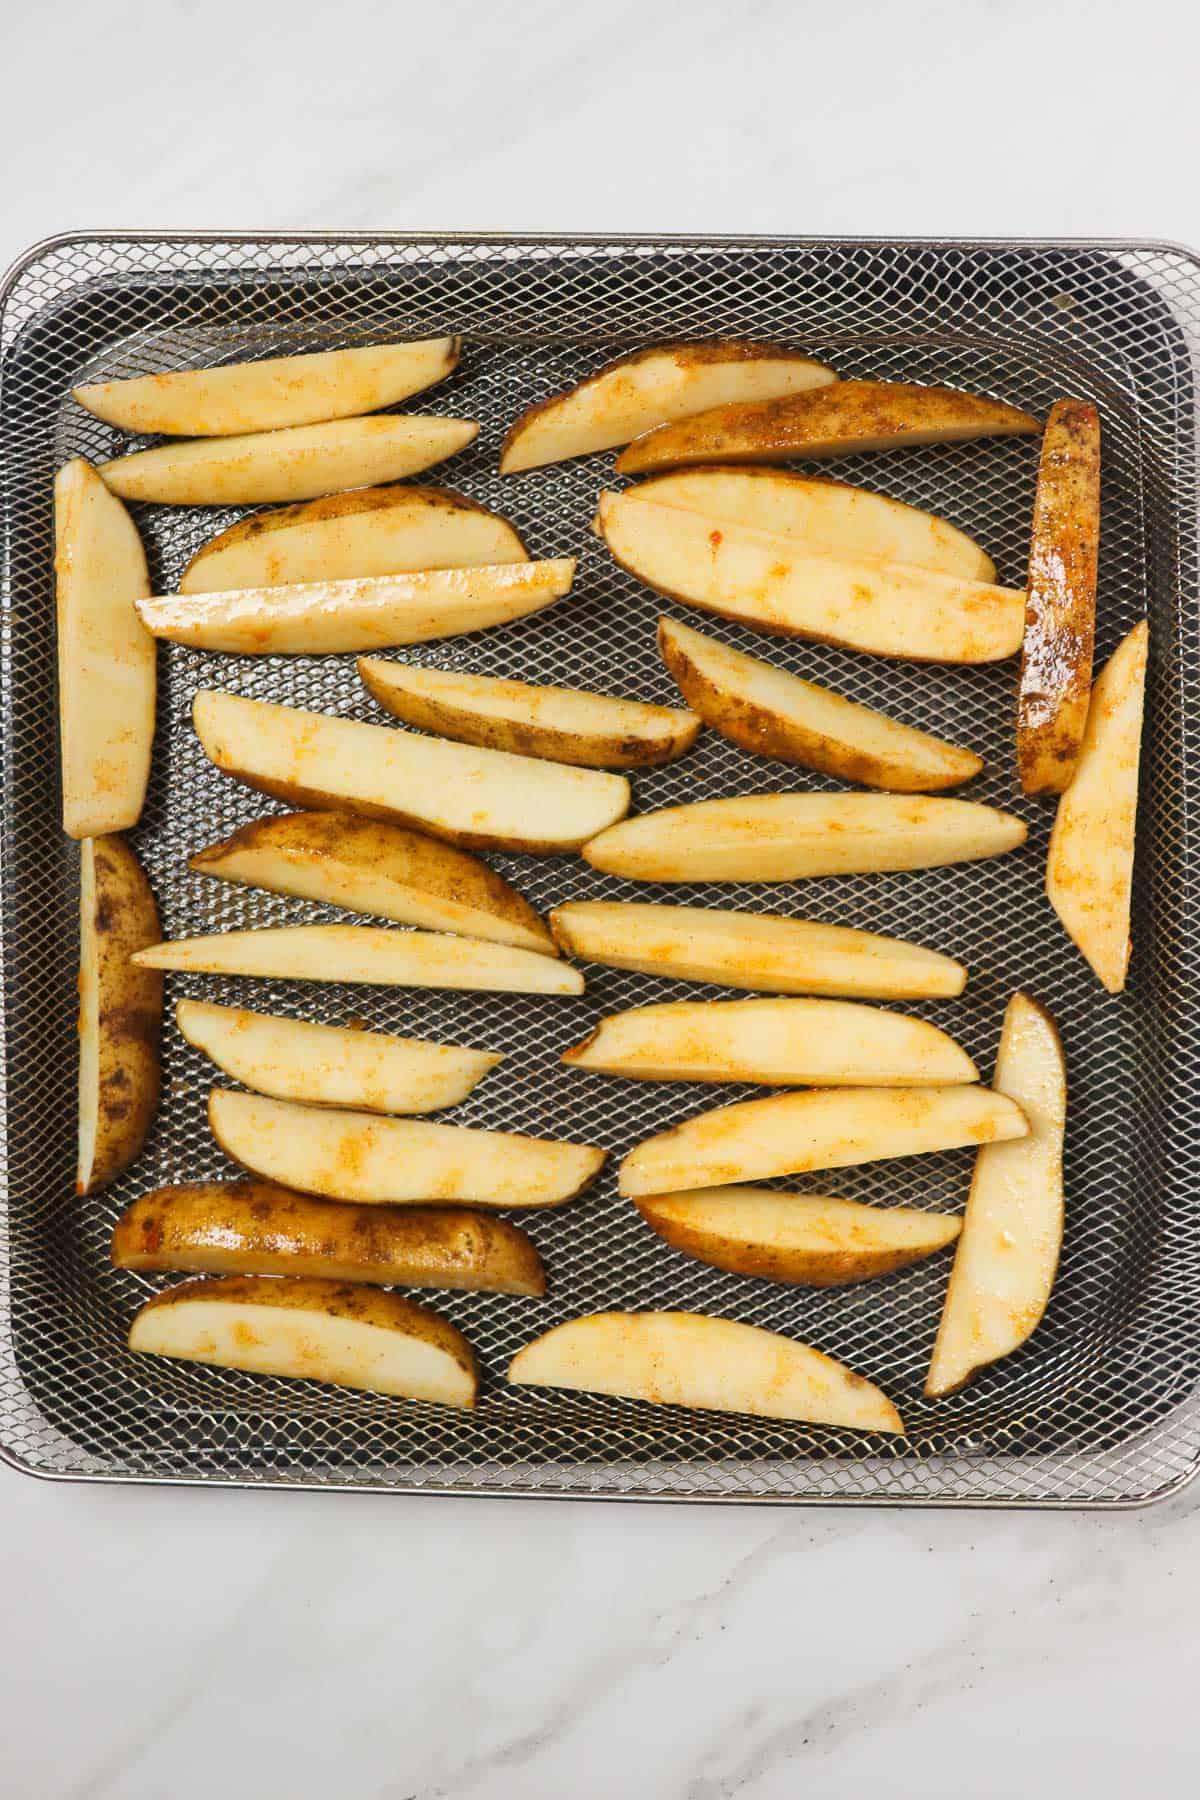 uncooked potato wedges loaded in air fryer basket